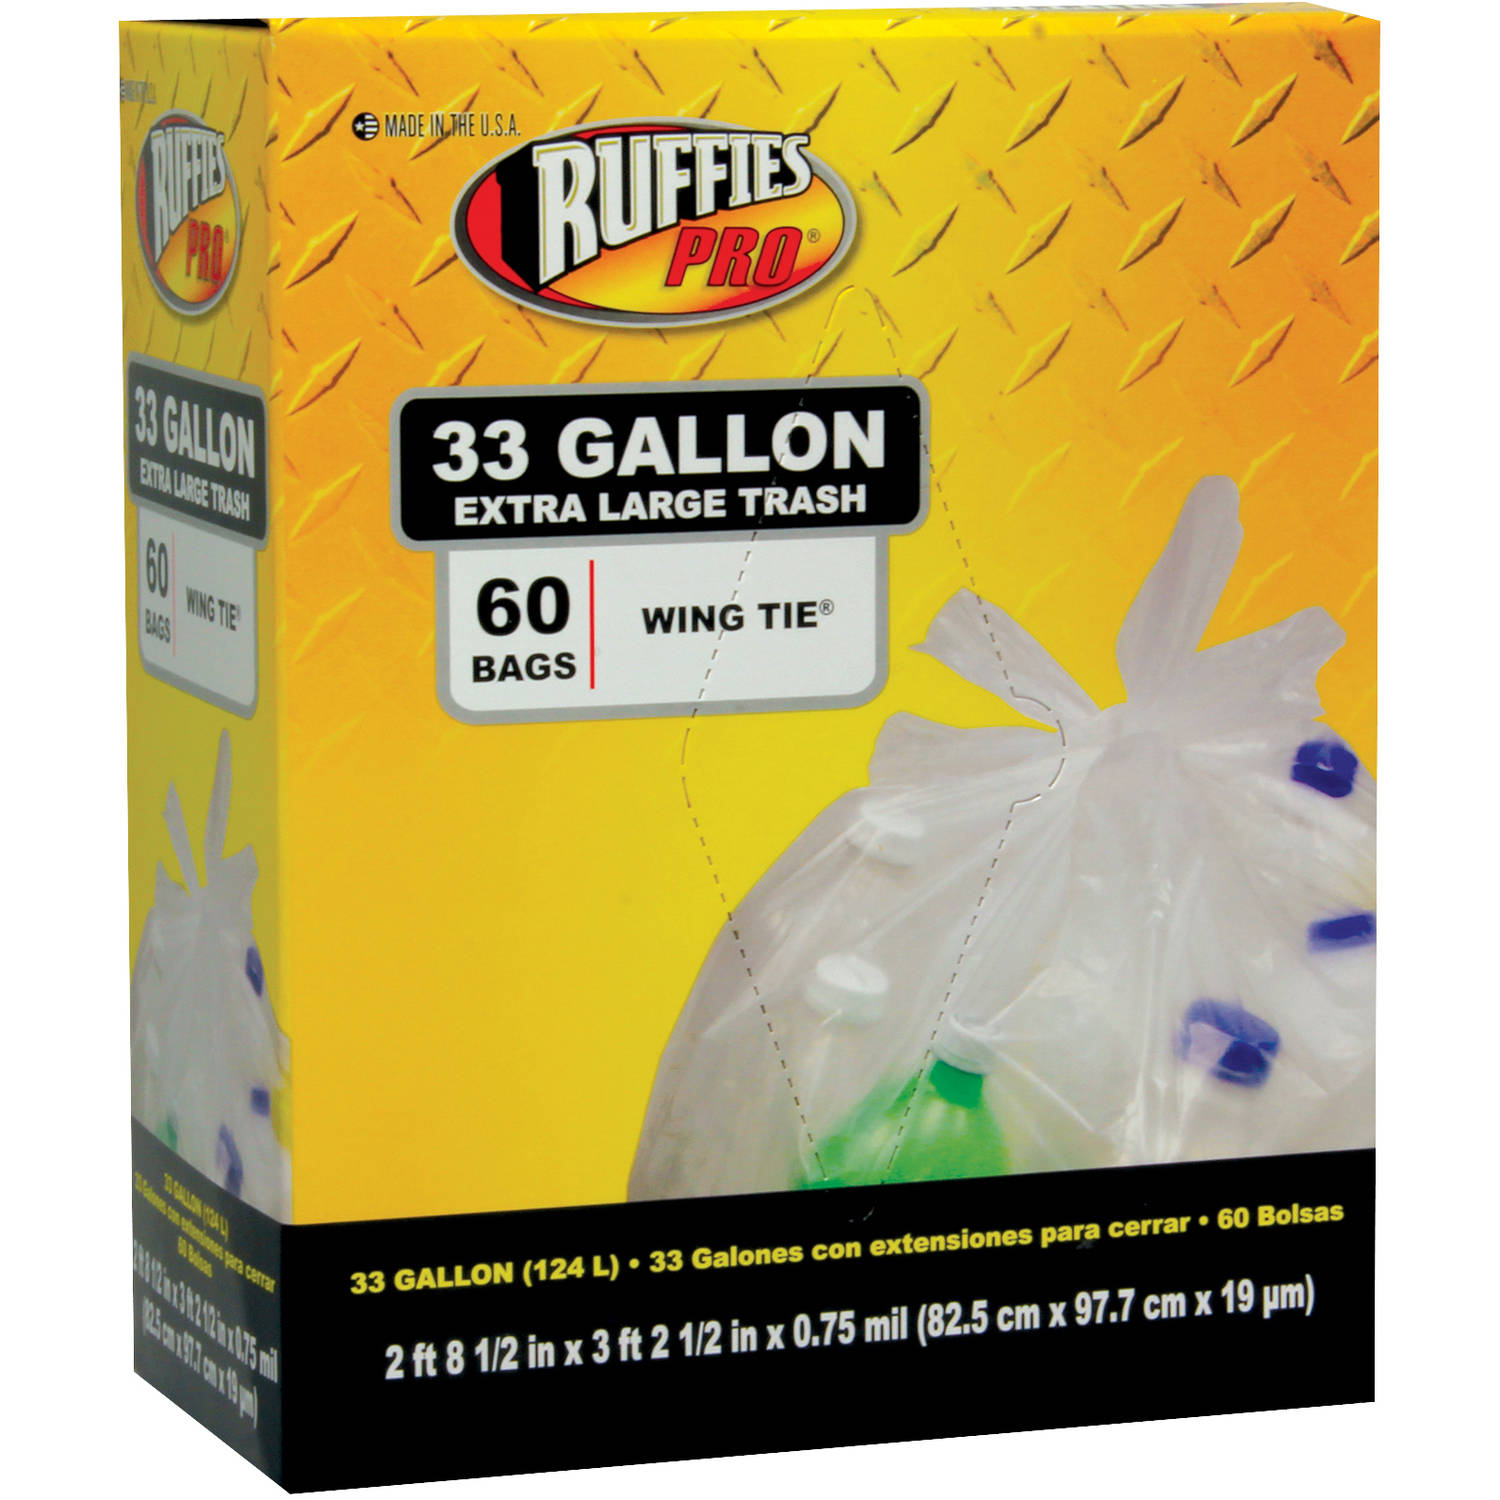 Ruffies Pro Extra Large Wing Tie Clear Trash Bags, 33 gal, 60 count